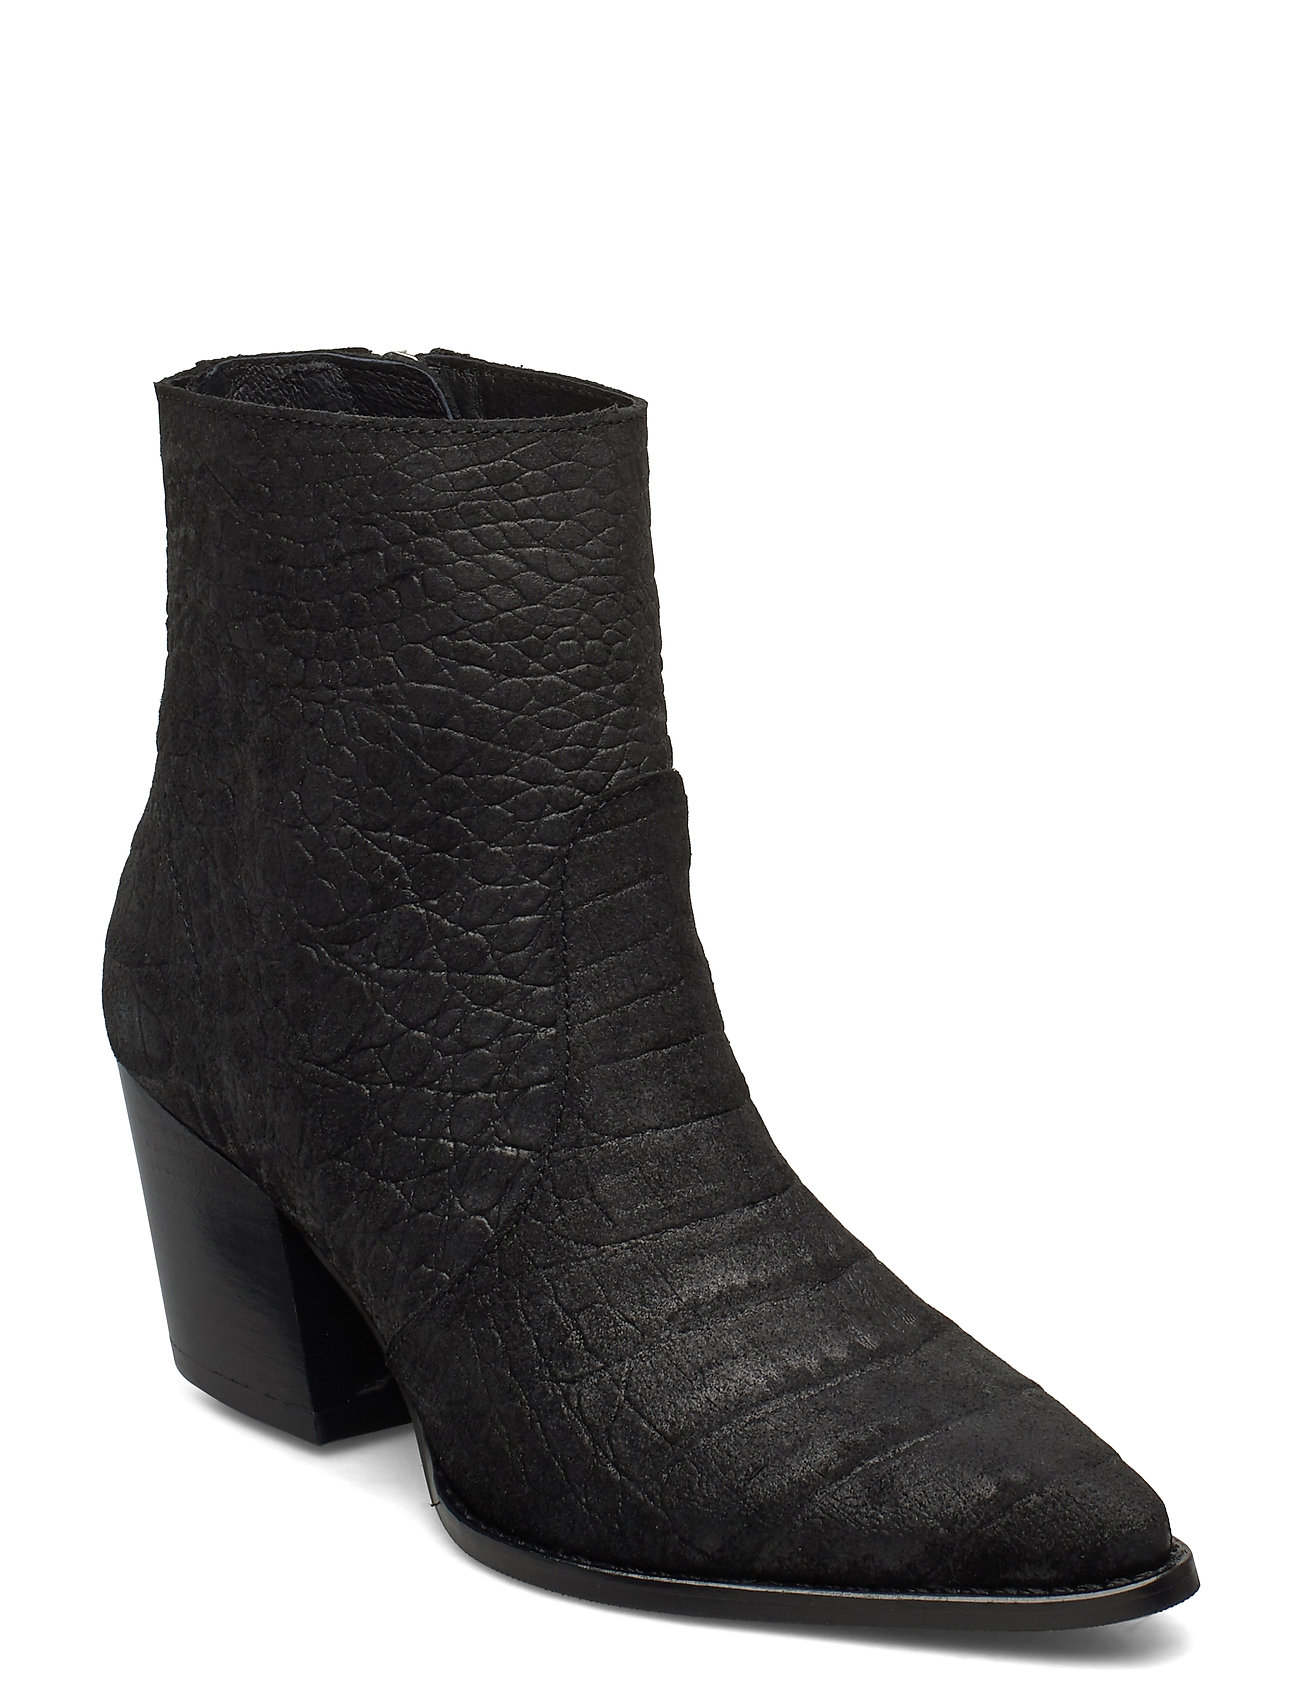 Image of Slfjulie Suede Croco Boot B Shoes Boots Ankle Boots Ankle Boot - Heel Sort Selected Femme (3430127197)